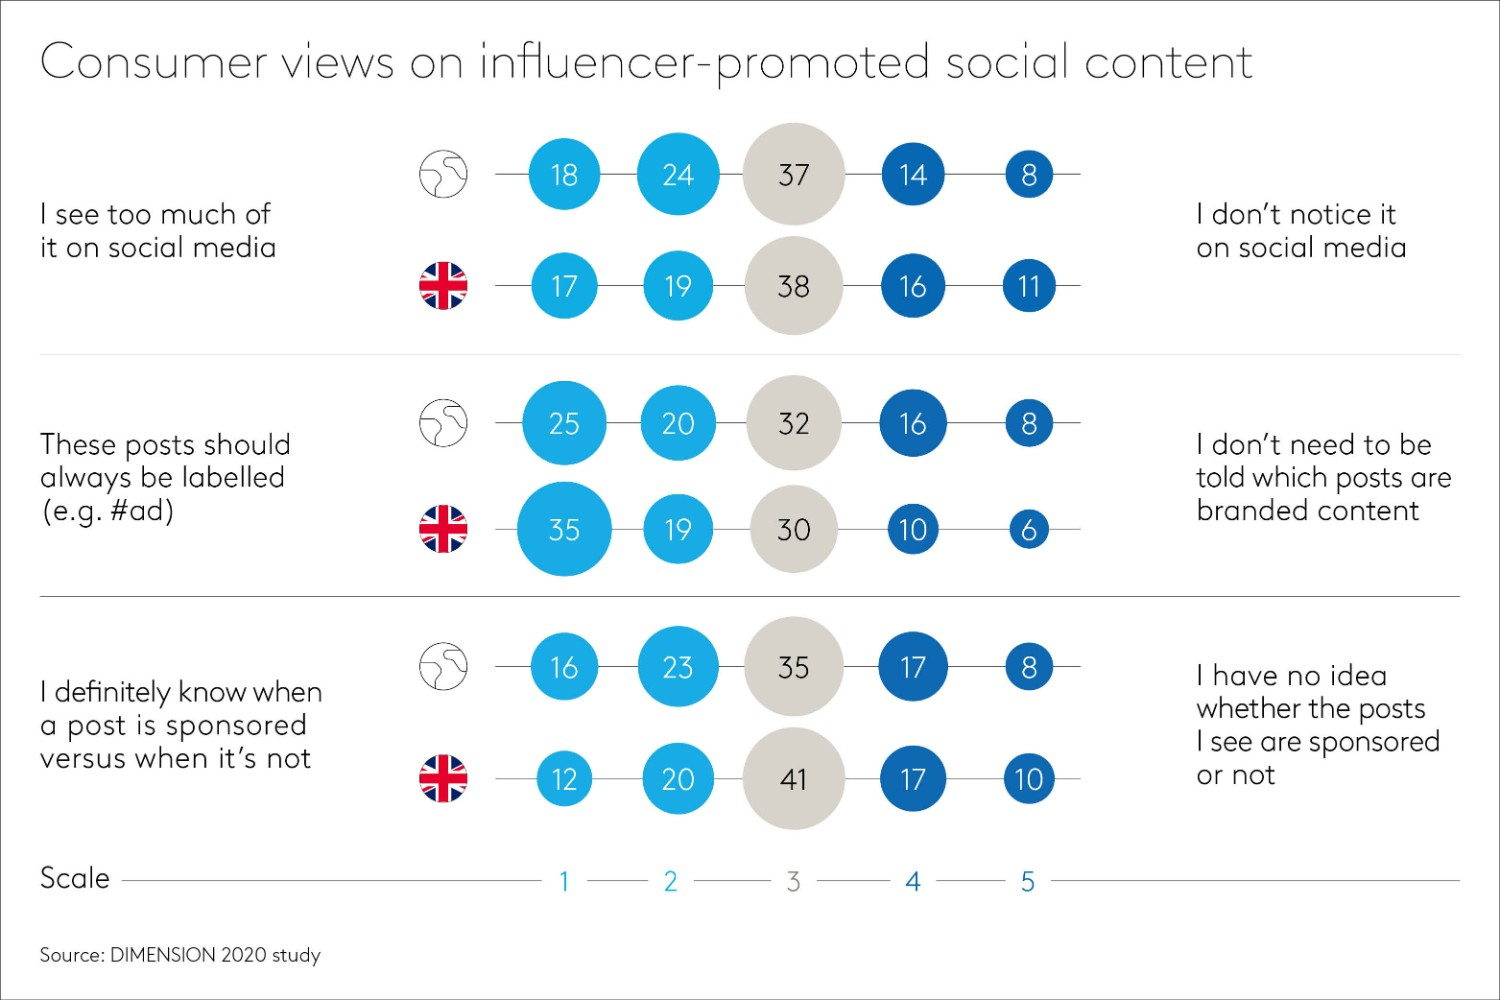 Consumer views on influencer content